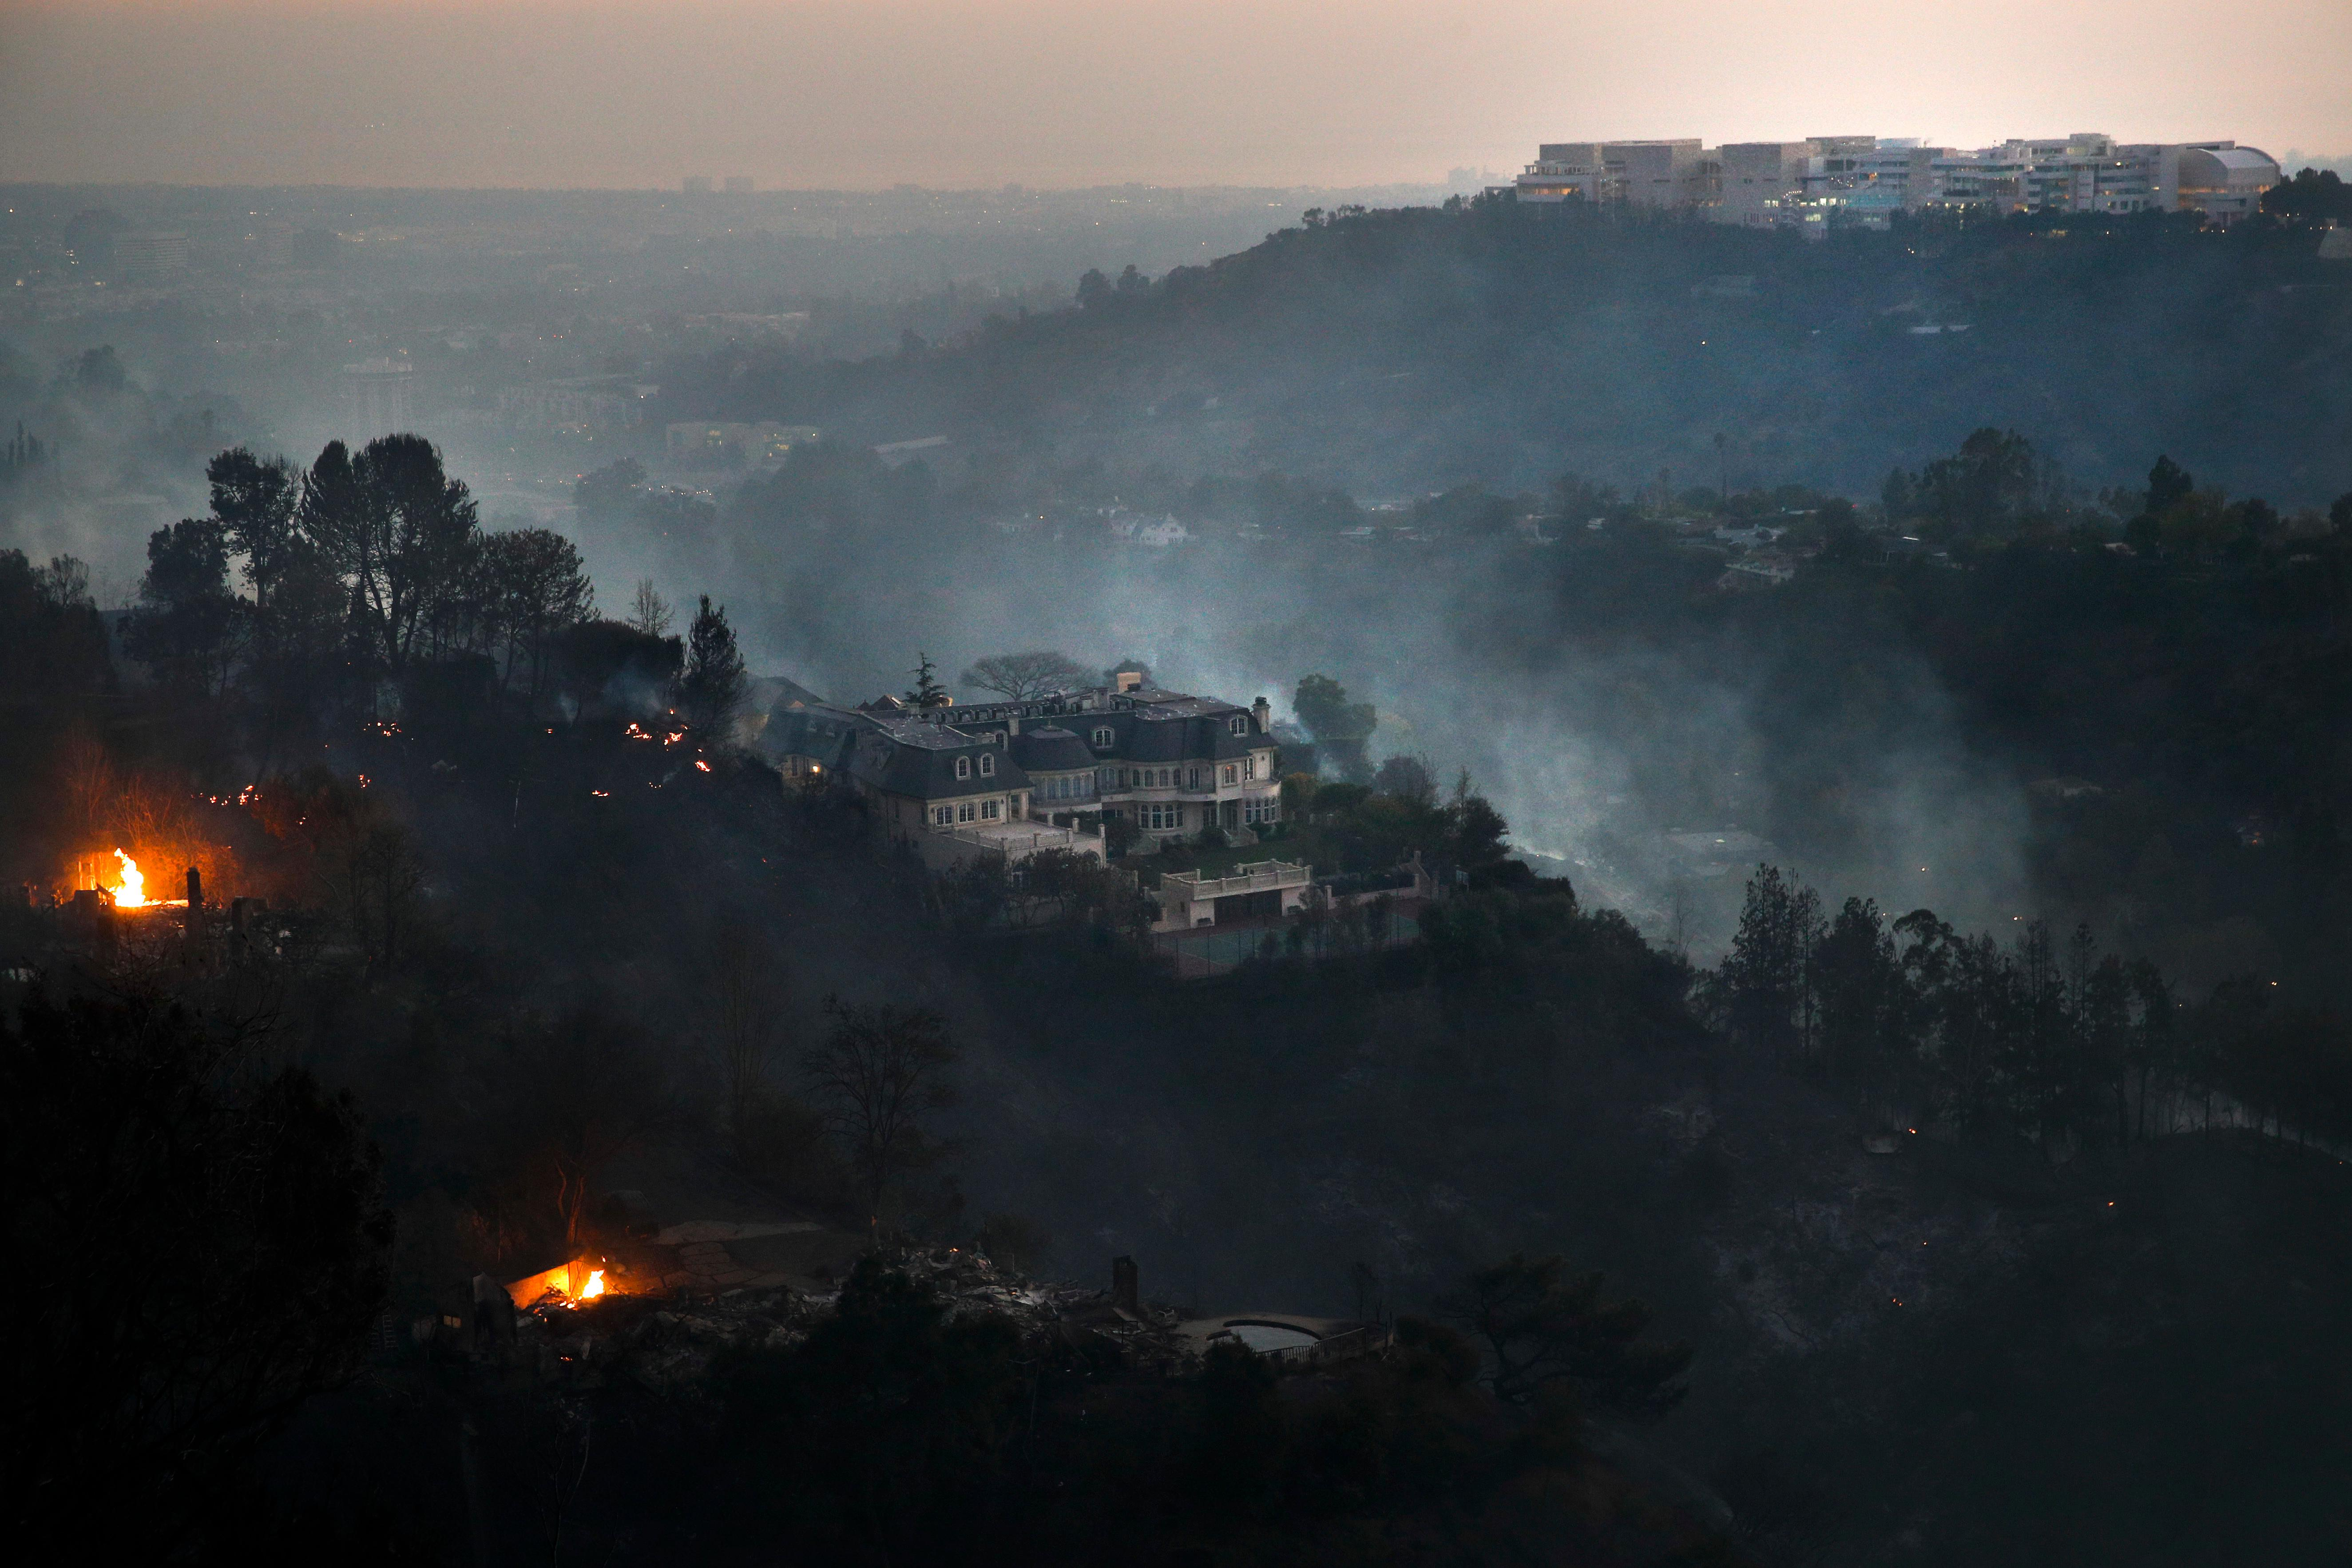 A mansion that survived a wildfire sits on a hilltop as the Getty Center, top right, is visible in distance in the Bel Air district of Los Angeles Wednesday, Dec. 6, 2017. A dangerous new wildfire erupted in the tony Bel Air area of Los Angeles early Wednesday as firefighters battled three other destructive blazes across Southern California. (AP Photo/Jae C. Hong)